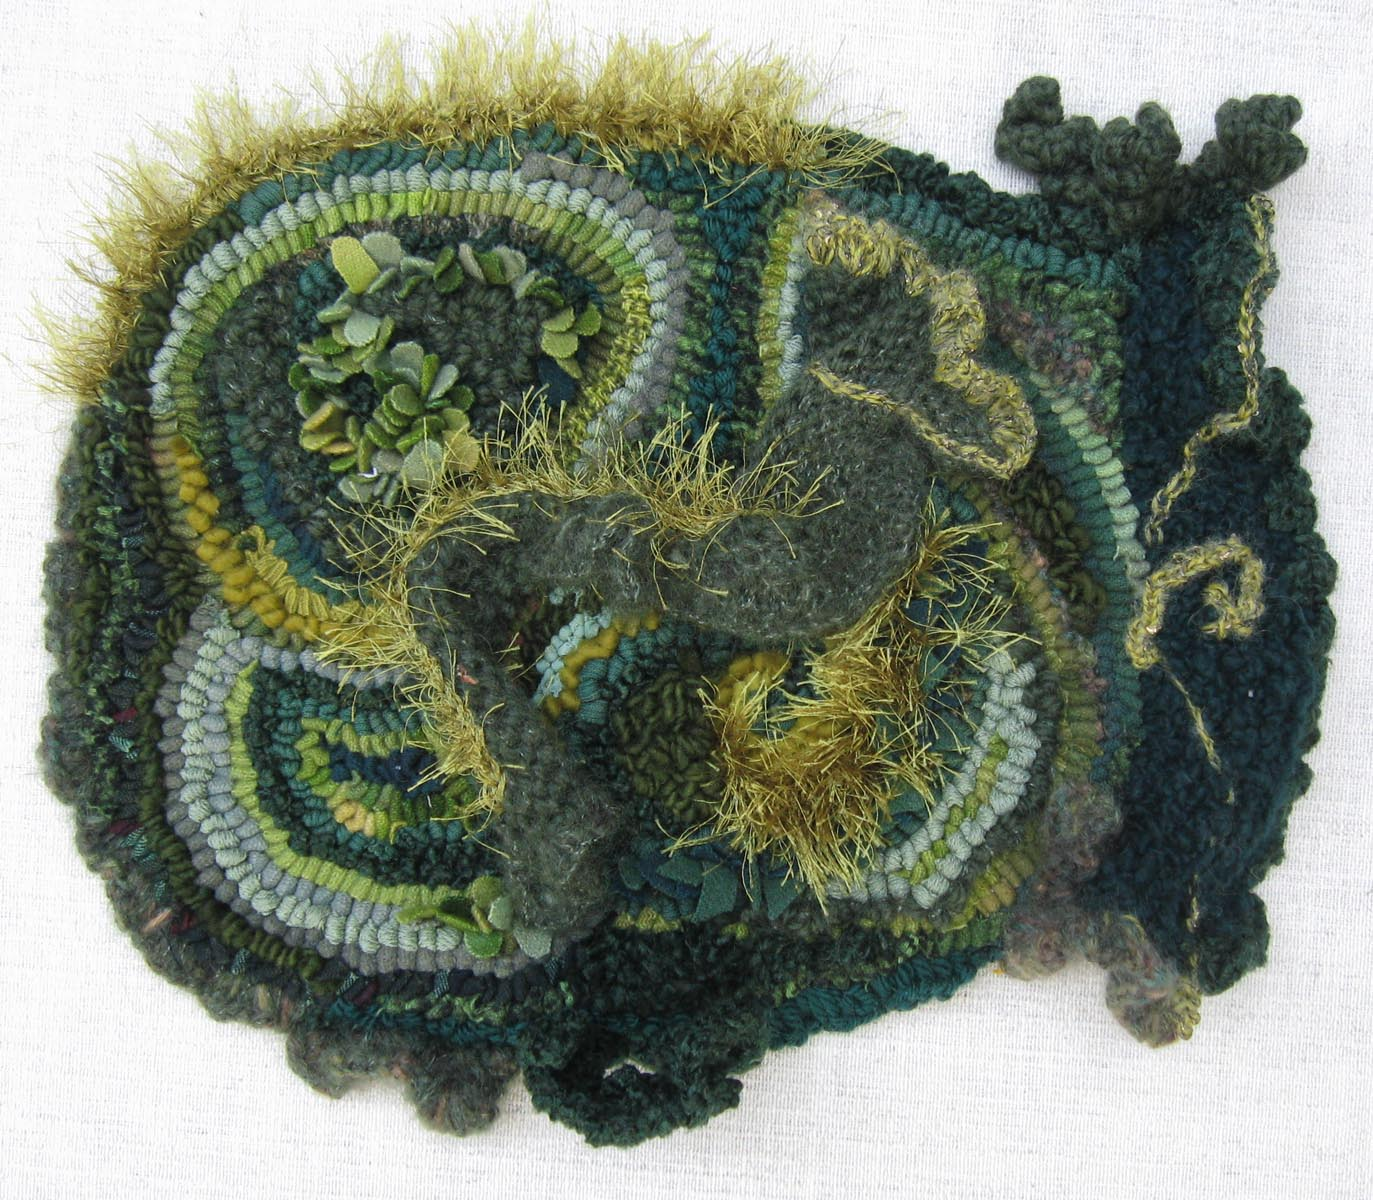 """Moss   2010, aprox 1.5"""" x 13"""" x 15"""", wool, cotton and mixed fiber in fabric and yarn; hand hooked, knit, crocheted and embroidered on Monk's cloth."""